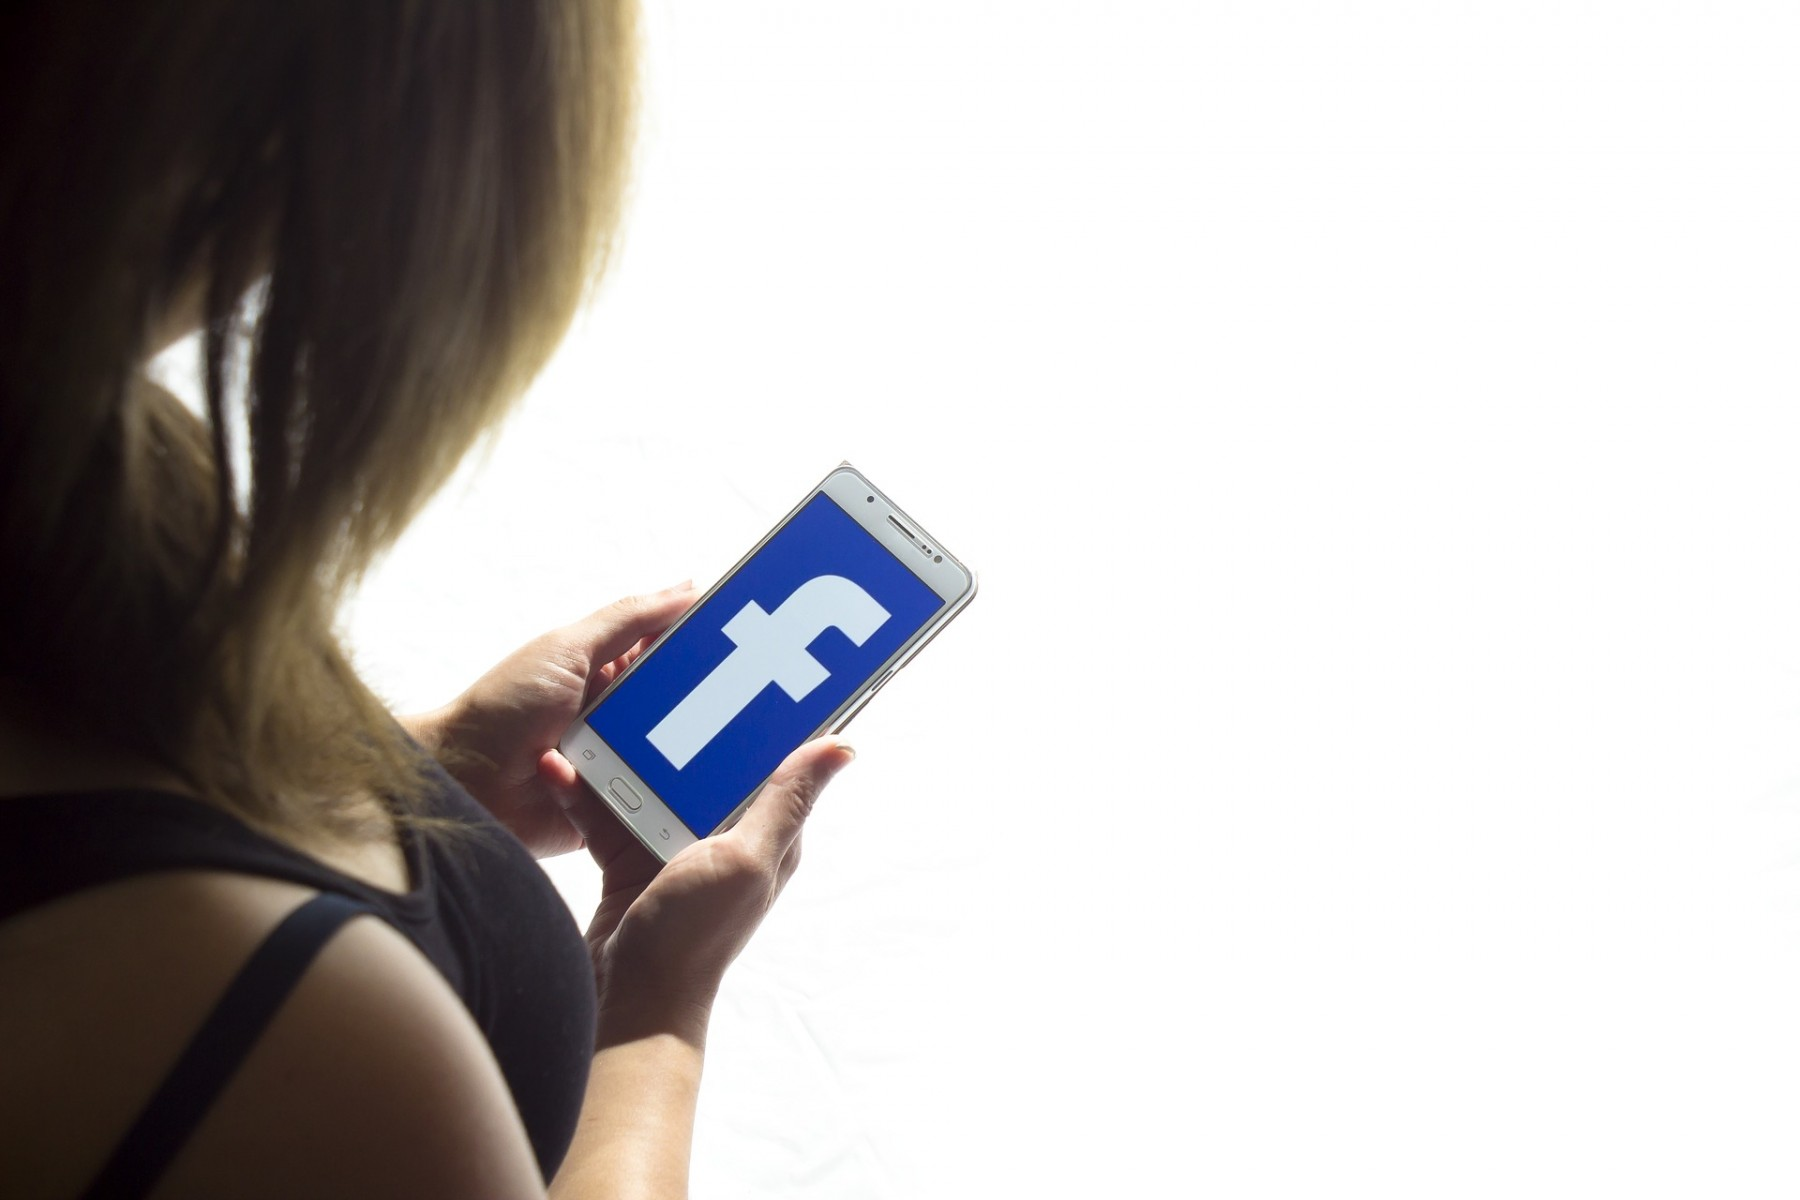 New study will examine Facebook users